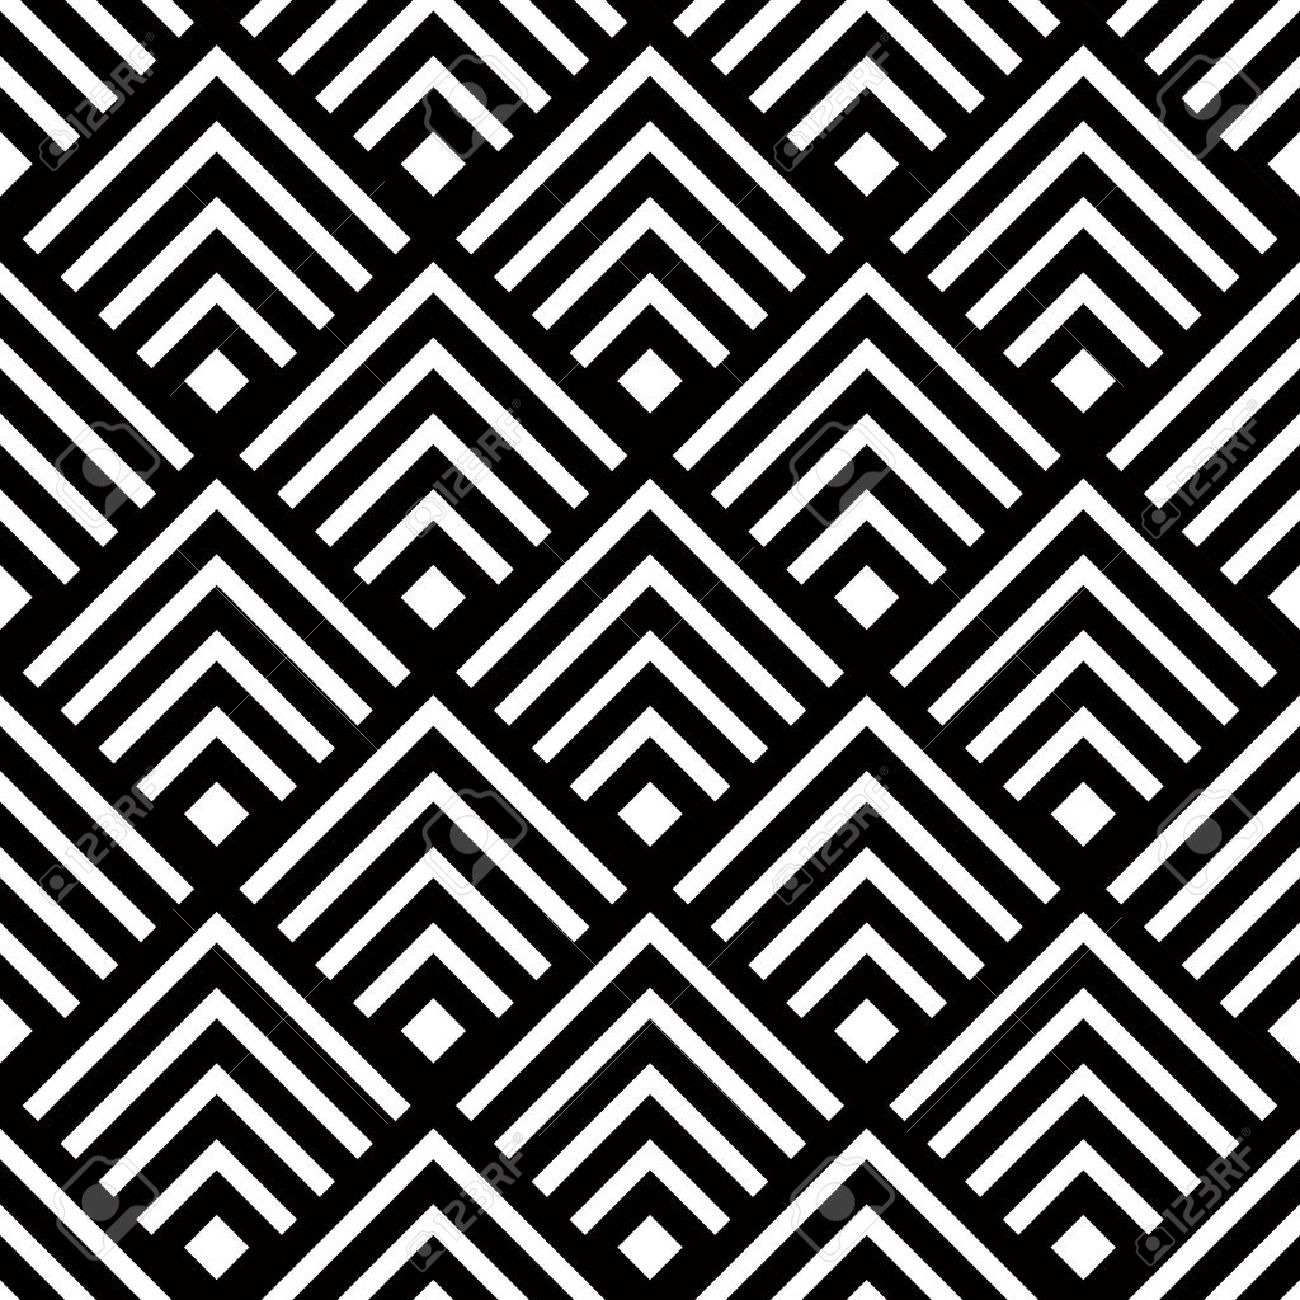 Seamless geometric vector background, simple black and white stripes vector pattern, accurate, editable and useful background for design or wallpaper. Stock Vector - 29722769